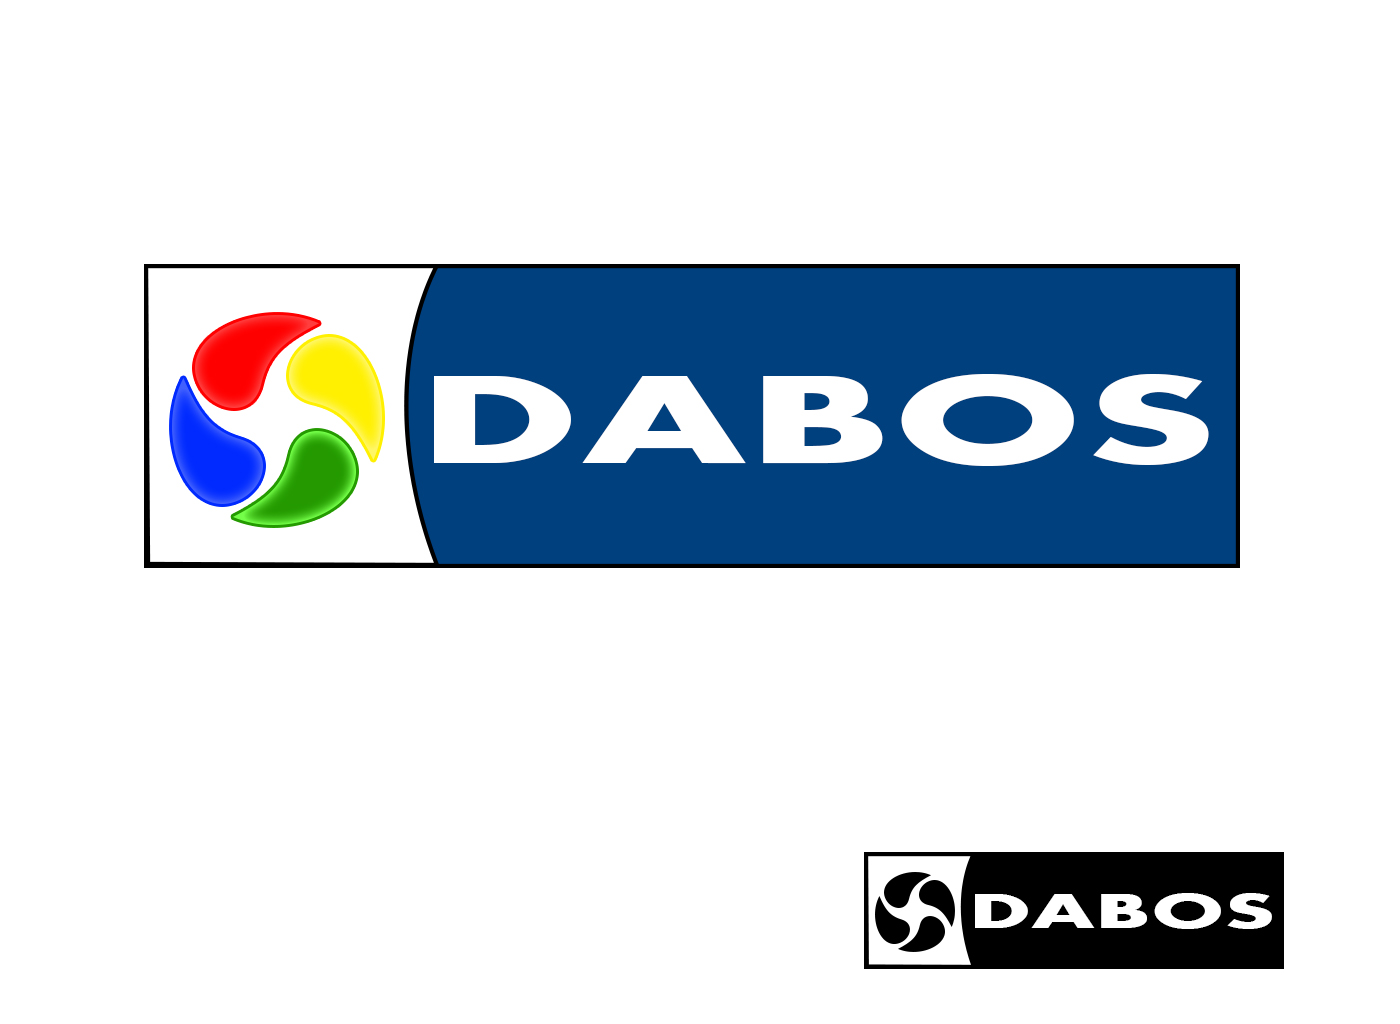 Logo Design by drunkman - Entry No. 150 in the Logo Design Contest Imaginative Logo Design for DABOS, Limited Liability Company.